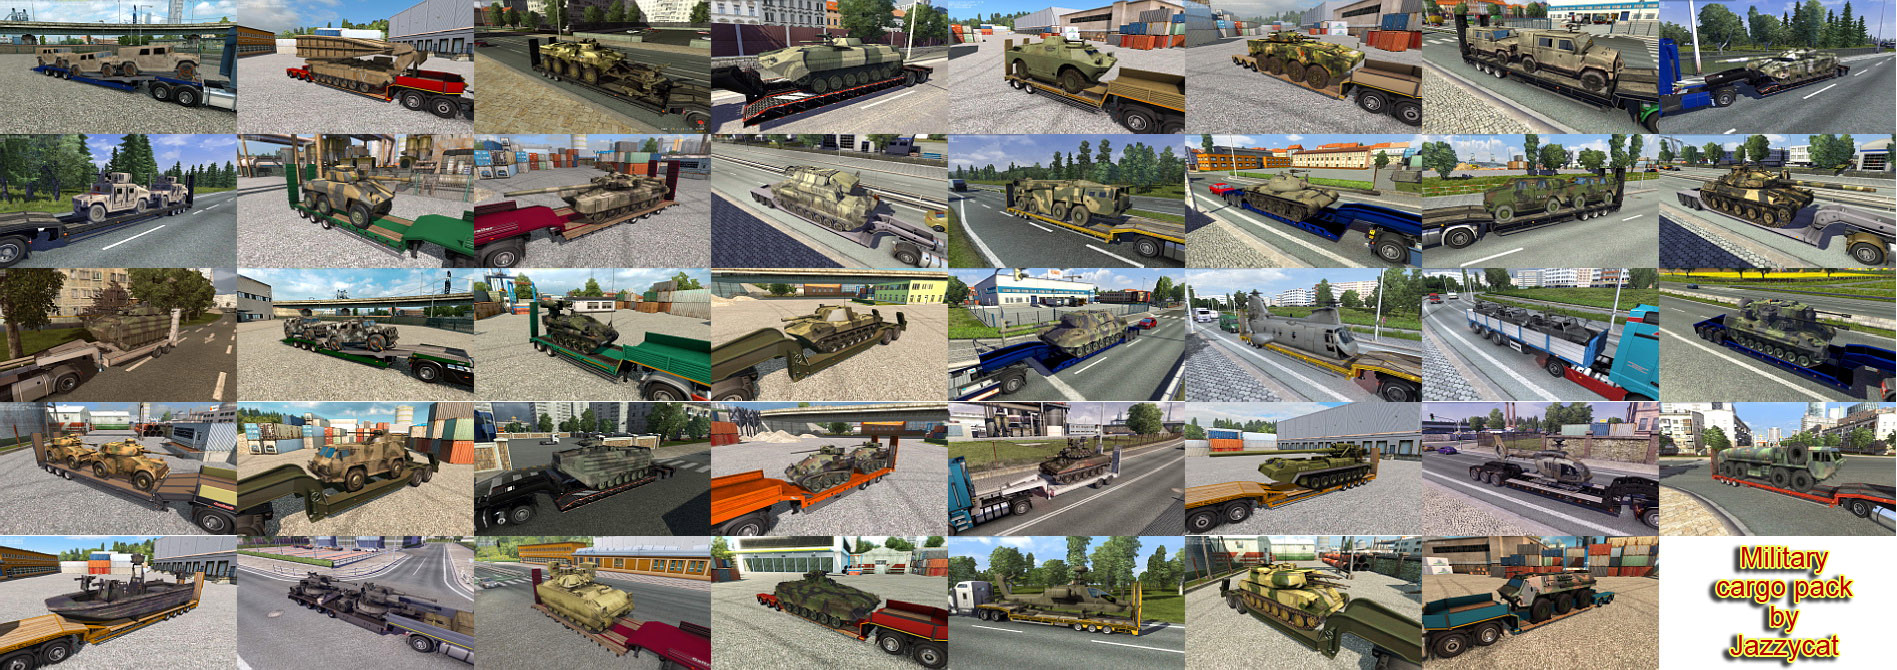 02_military_cargo_pack_by_Jazzycat_v1.9